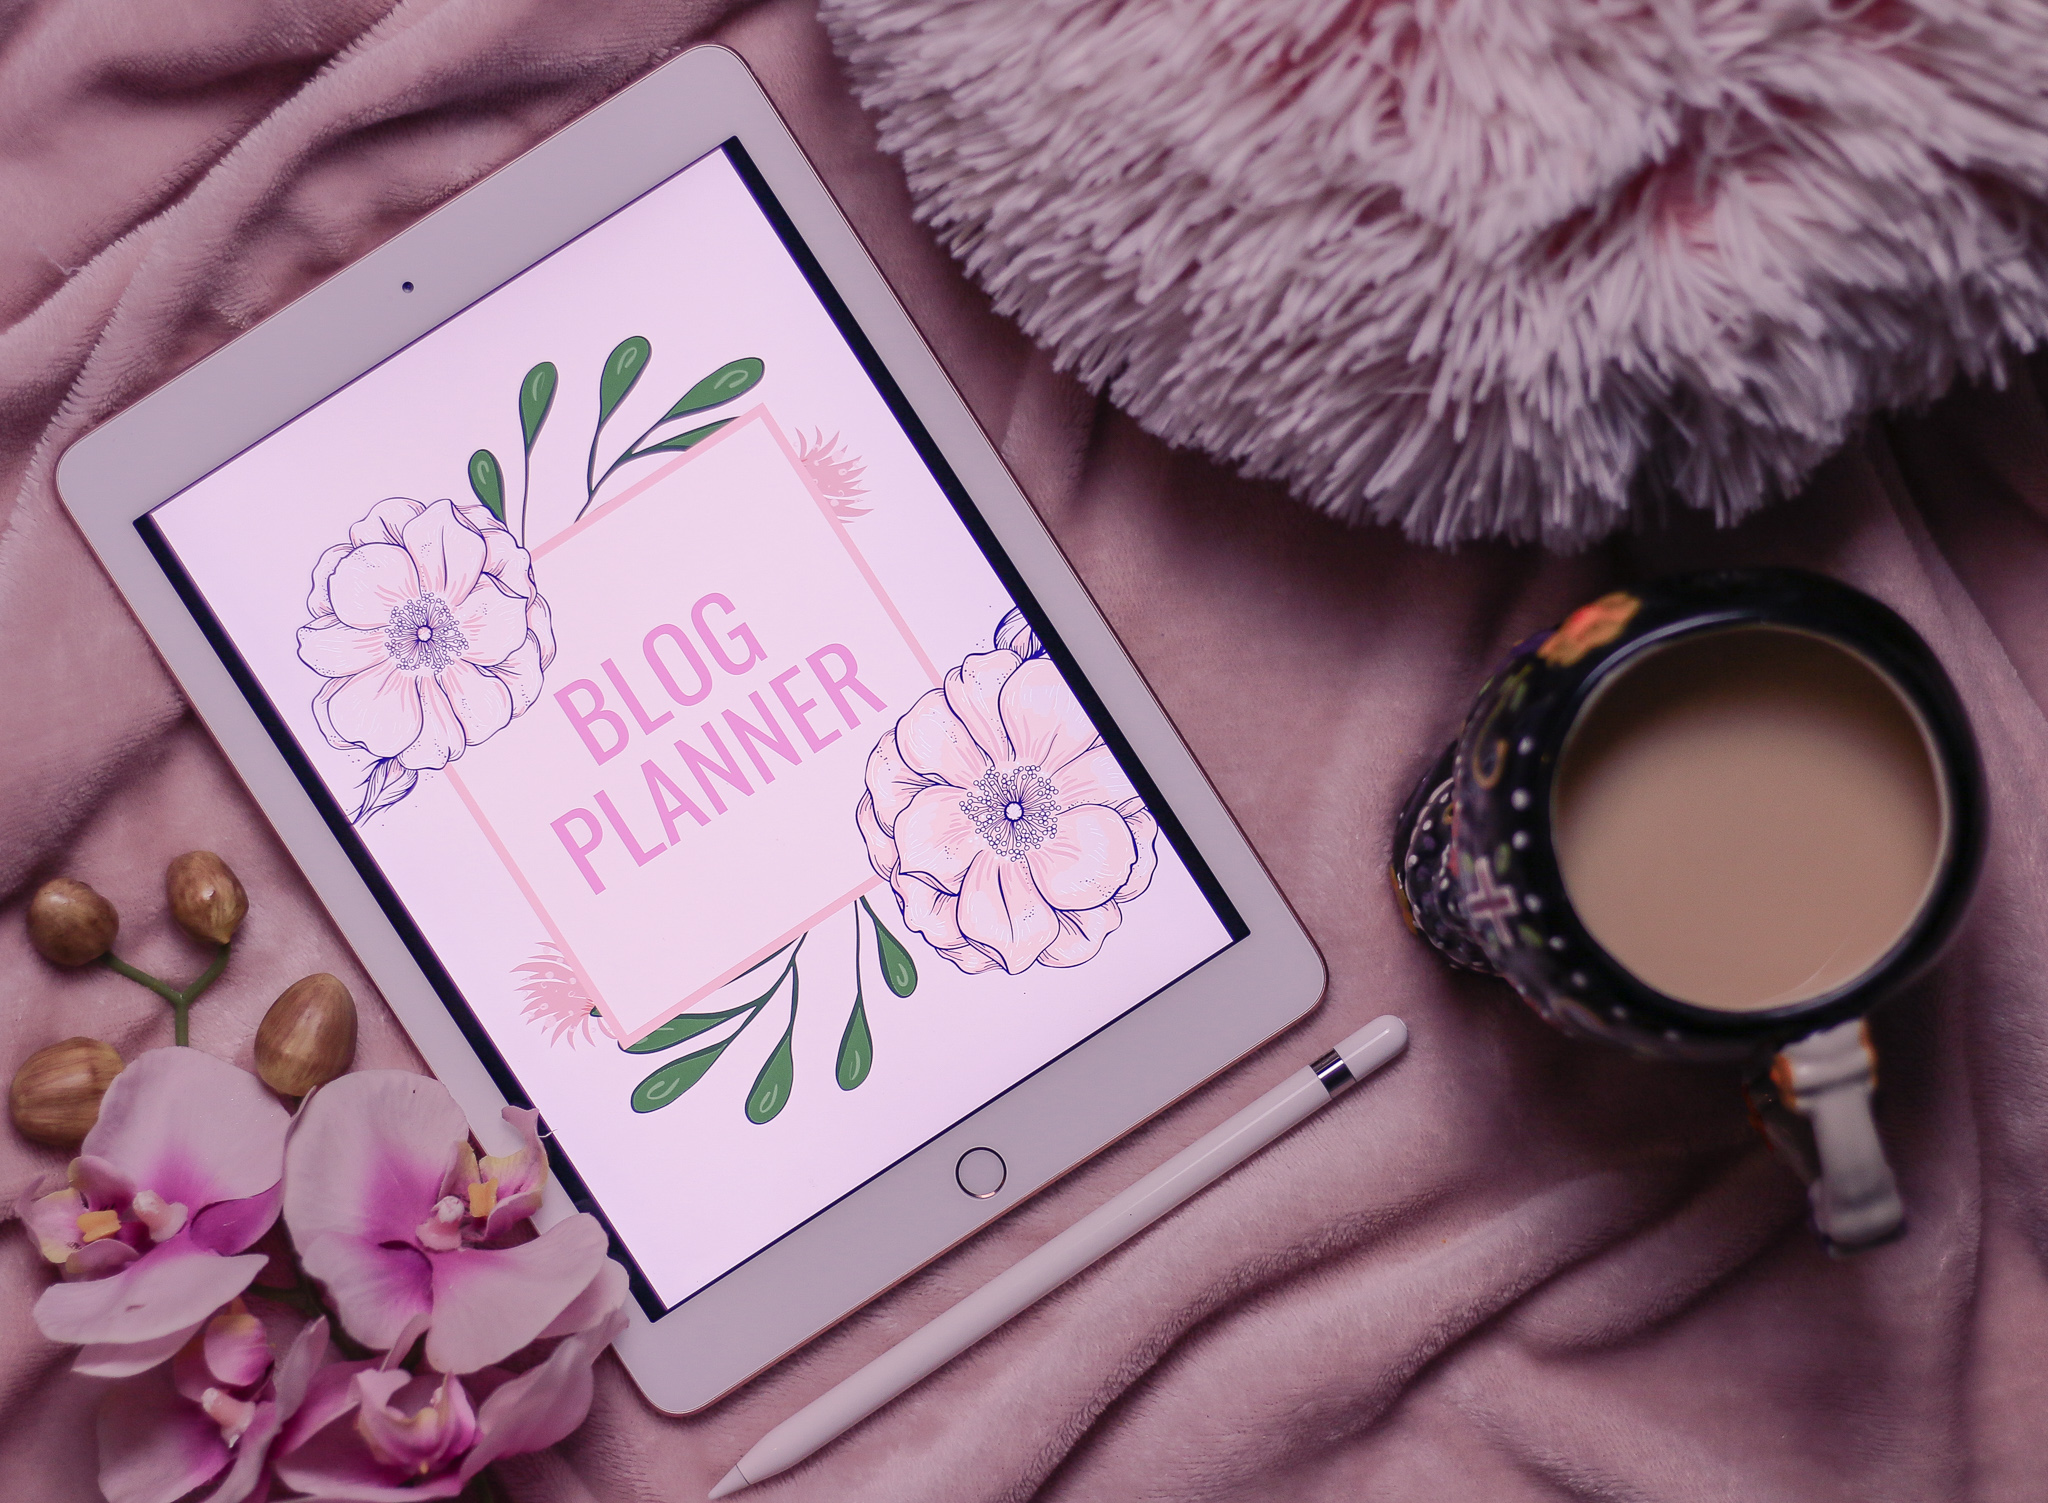 Birds eye view of an iPad on a pink blanket showing the image of a blog planner cover with pink flowers to the left of the photo